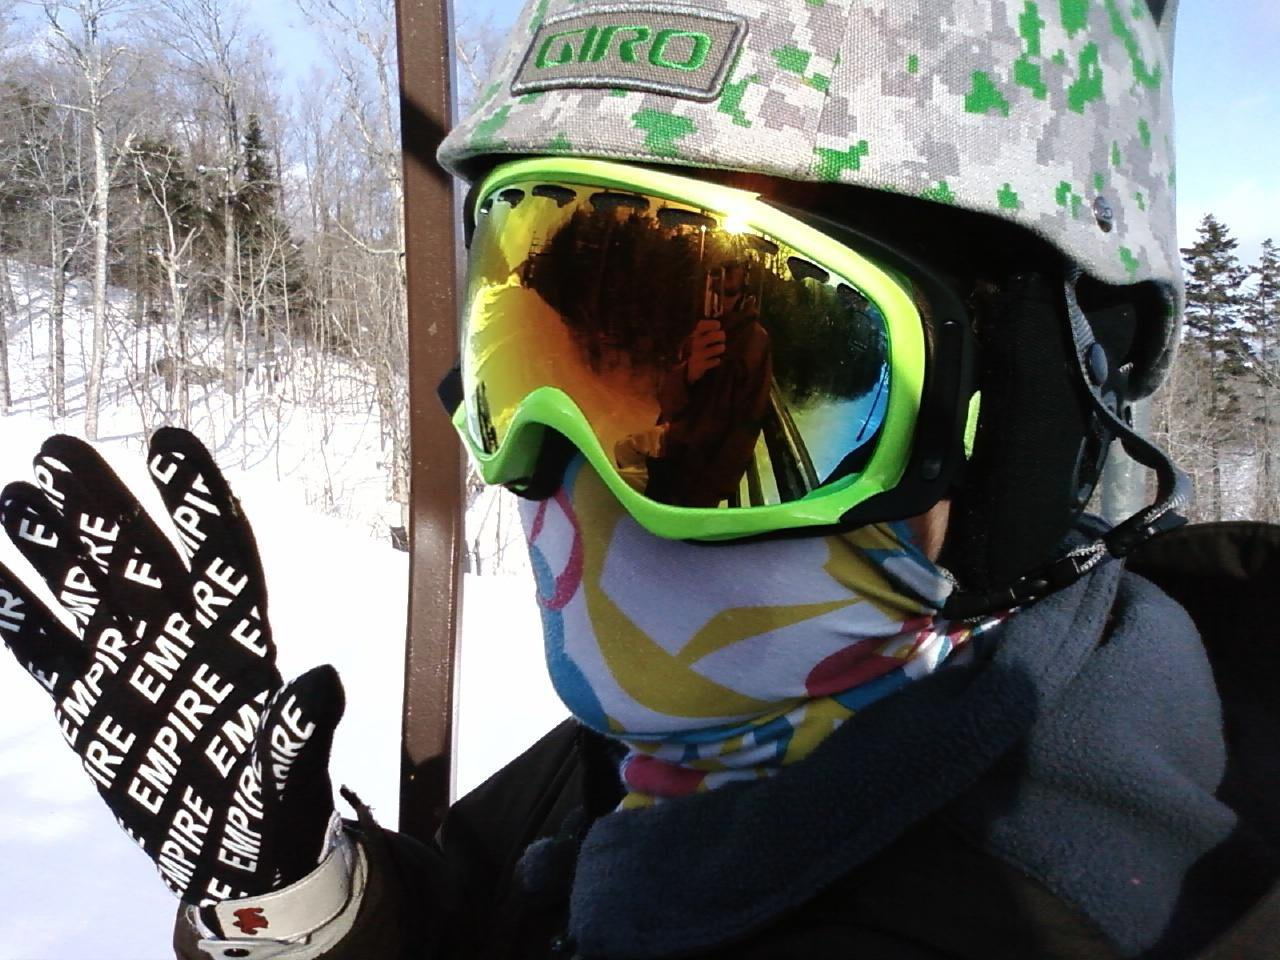 Me at Sunday river